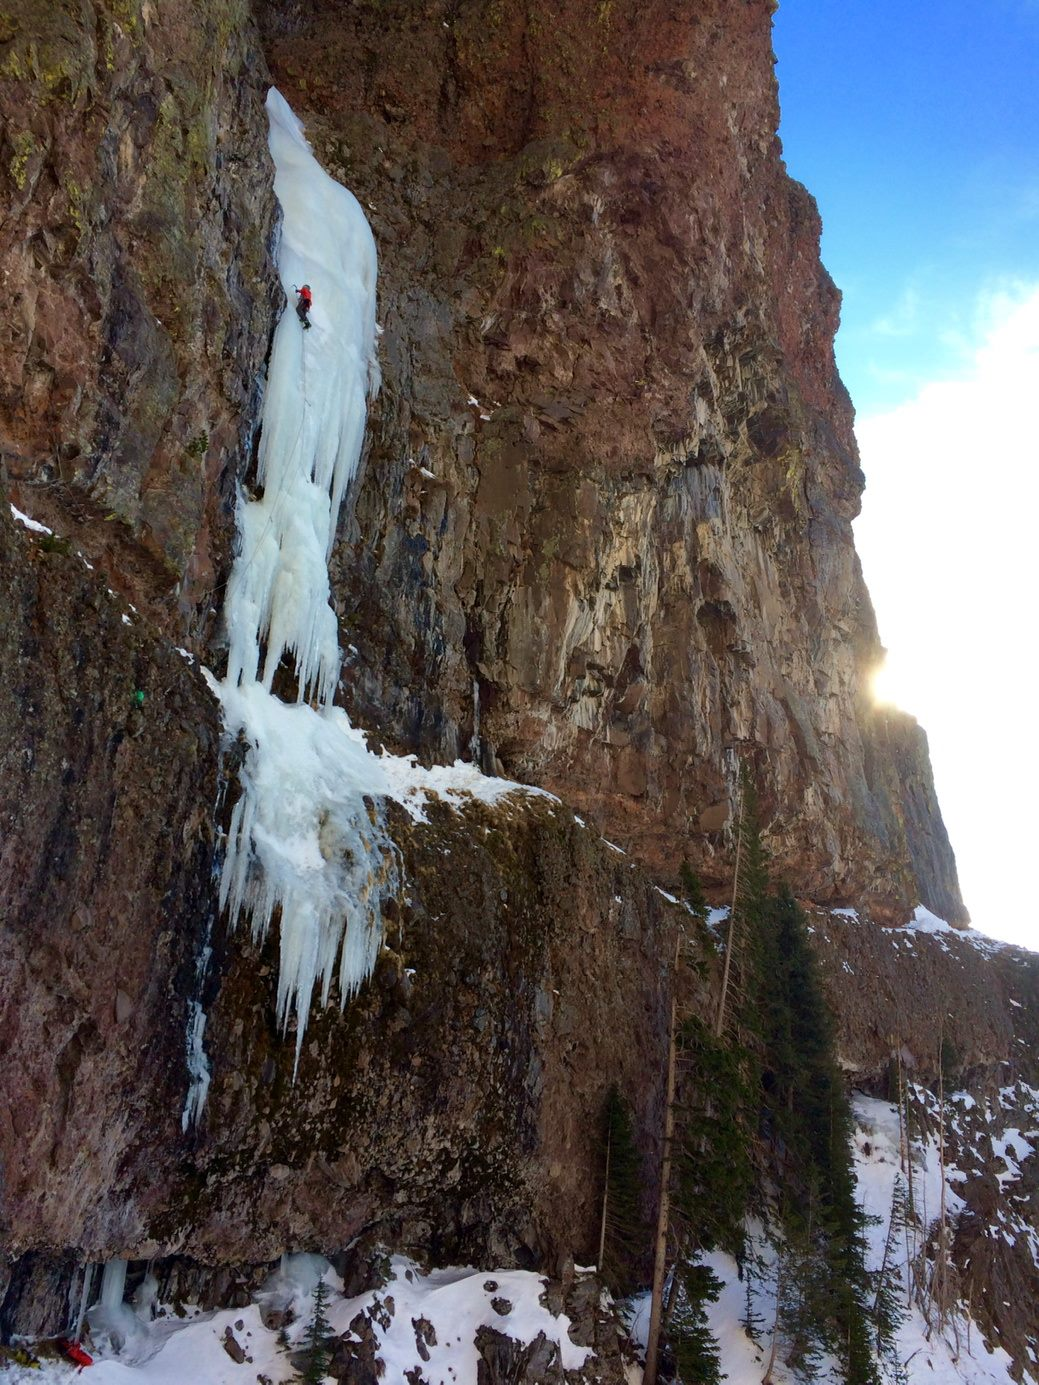 A climber on Responsible Family Man, WI5, in Hyalite Canyon, MT during the Bozeman Ice Festival. Photo Credit: Alden Pellet